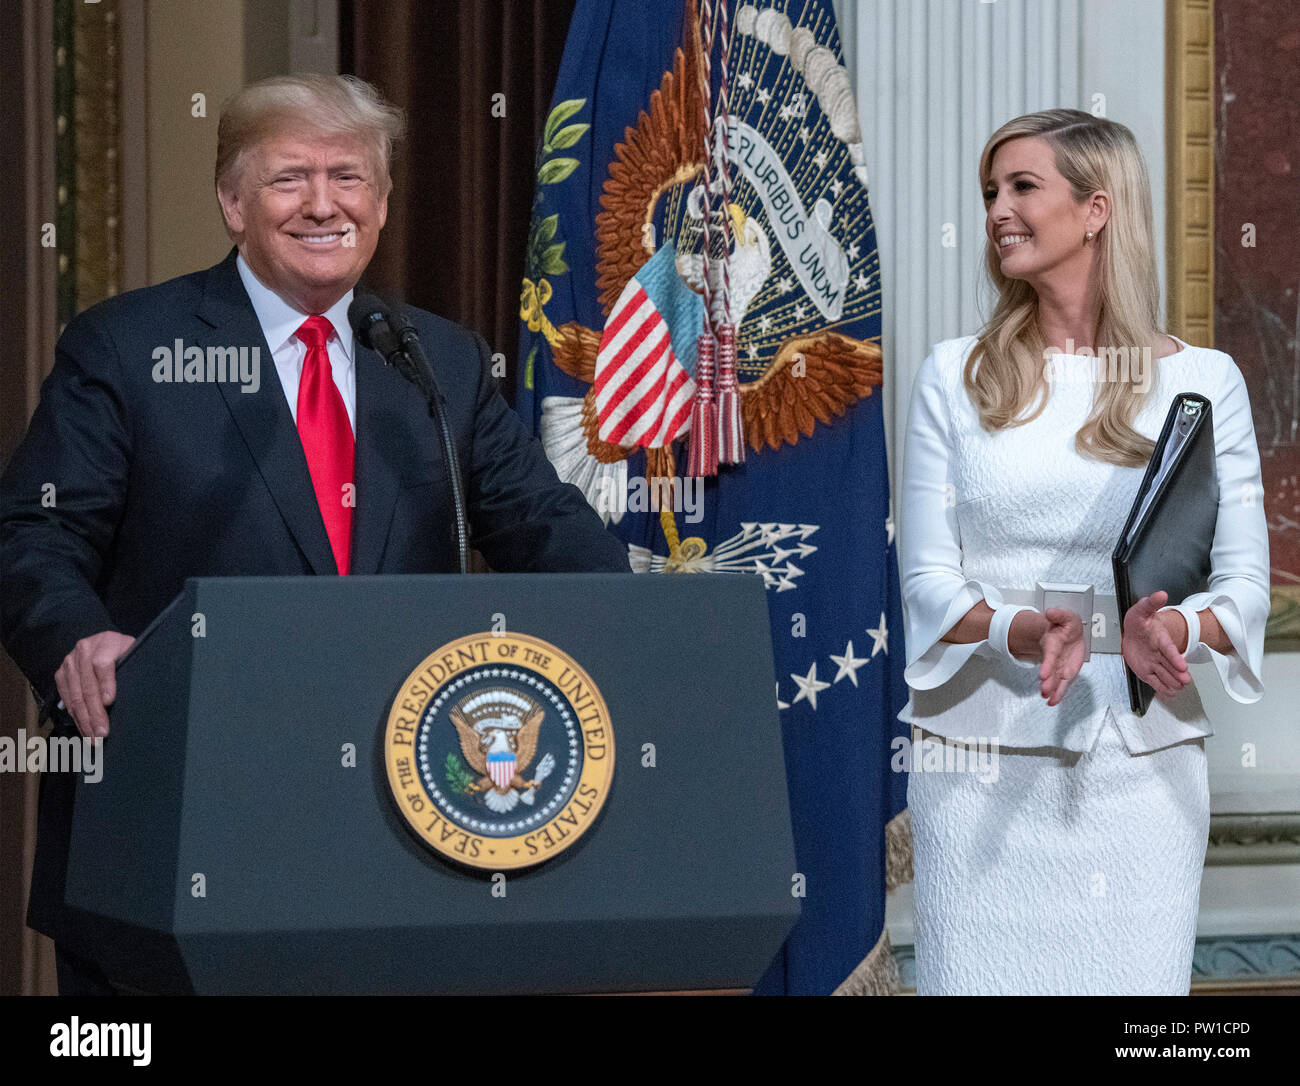 United States President Donald J. Trump arrives to make remarks at the Interagency Task Force to Monitor and Combat Trafficking in Persons annual meeting in the Indian Treaty Room of the White House in Washington, DC on Thursday, October 11, 2018. At right is First Daughter and Advisor to the President Ivanka Trump. Credit: Ron Sachs/CNP | usage worldwide Stock Photo